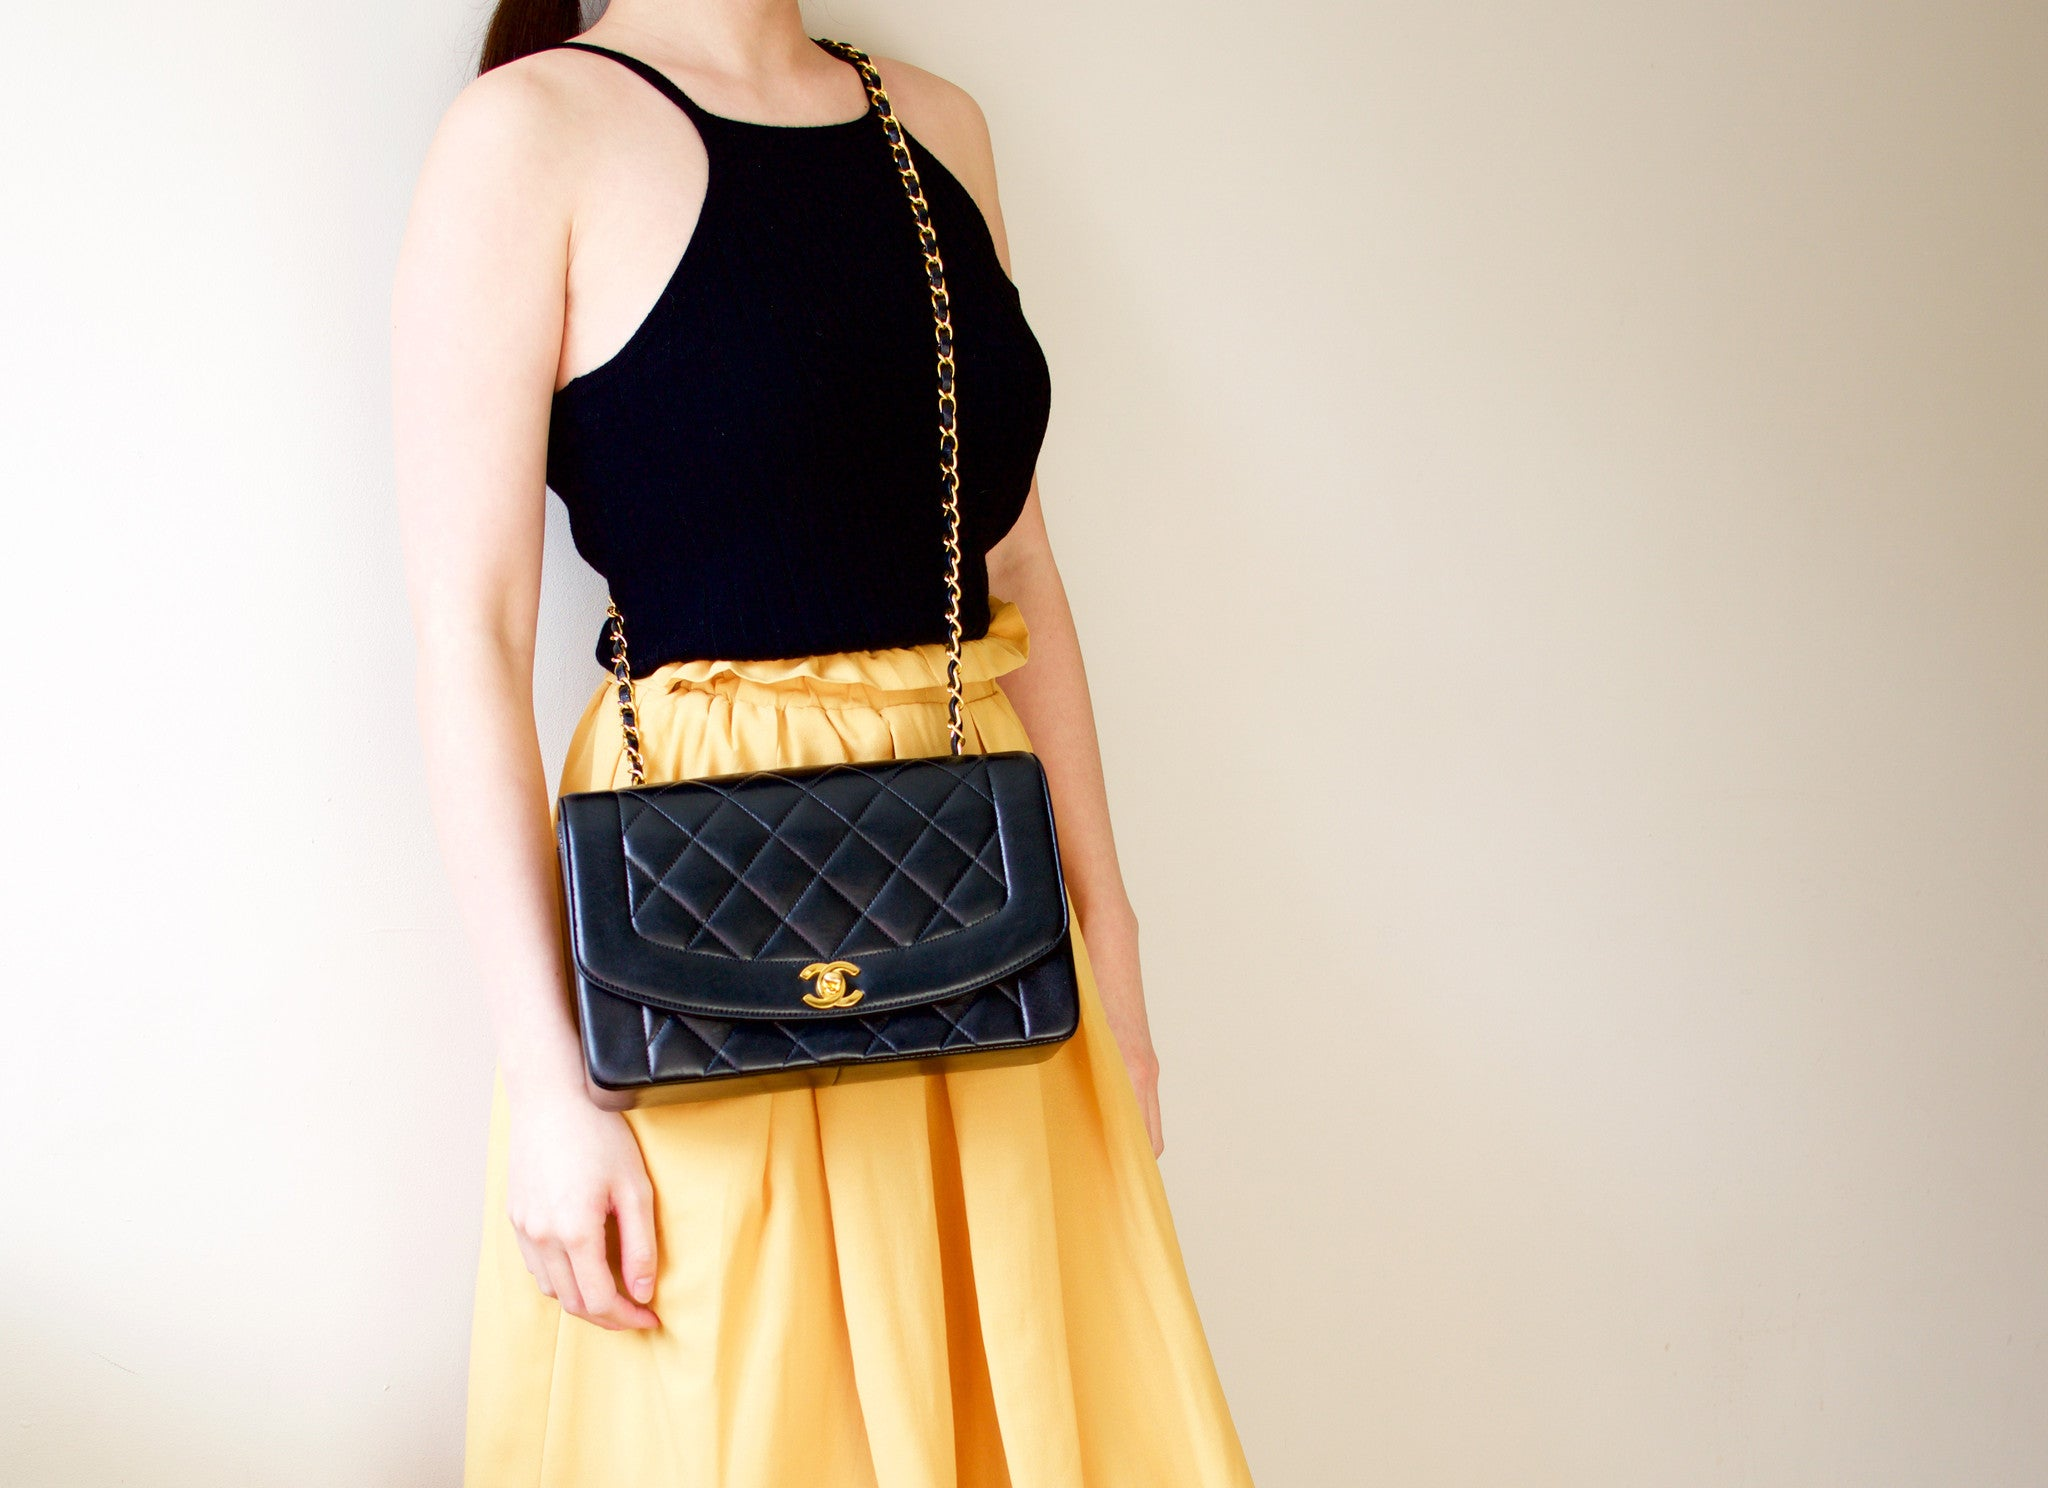 b2405a2a7206b7 CHANEL VINTAGE BAG - Quilted Classic Flap Bag in Black Diana bag ...